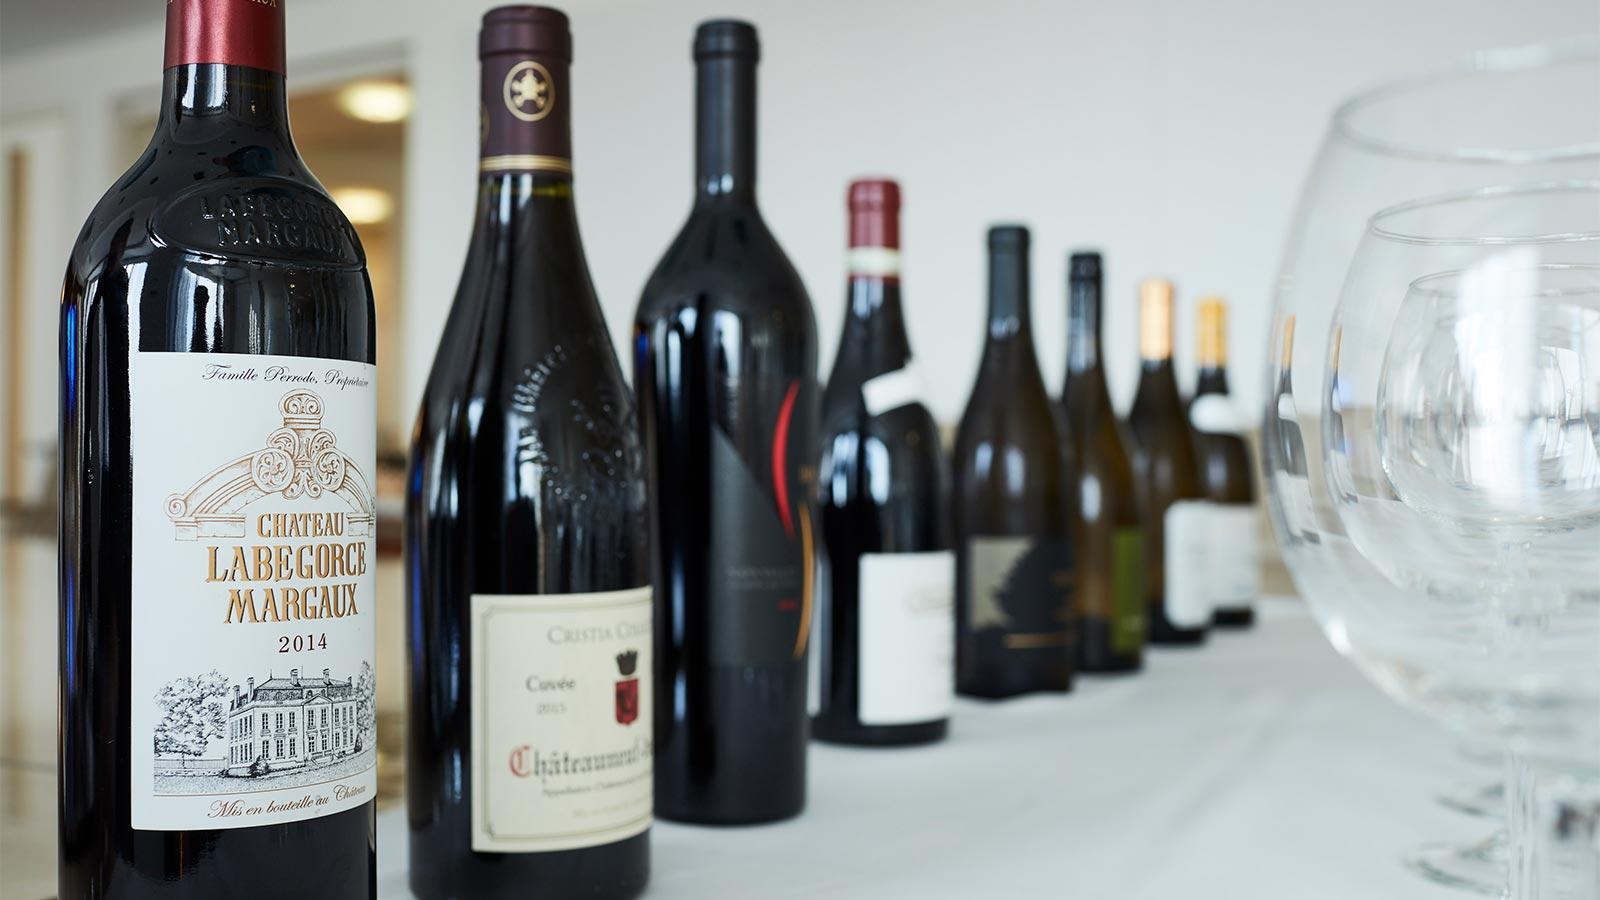 A collection of wine bottles to be shared includes Bordeaux and Châteauneuf-du-Pape reds.